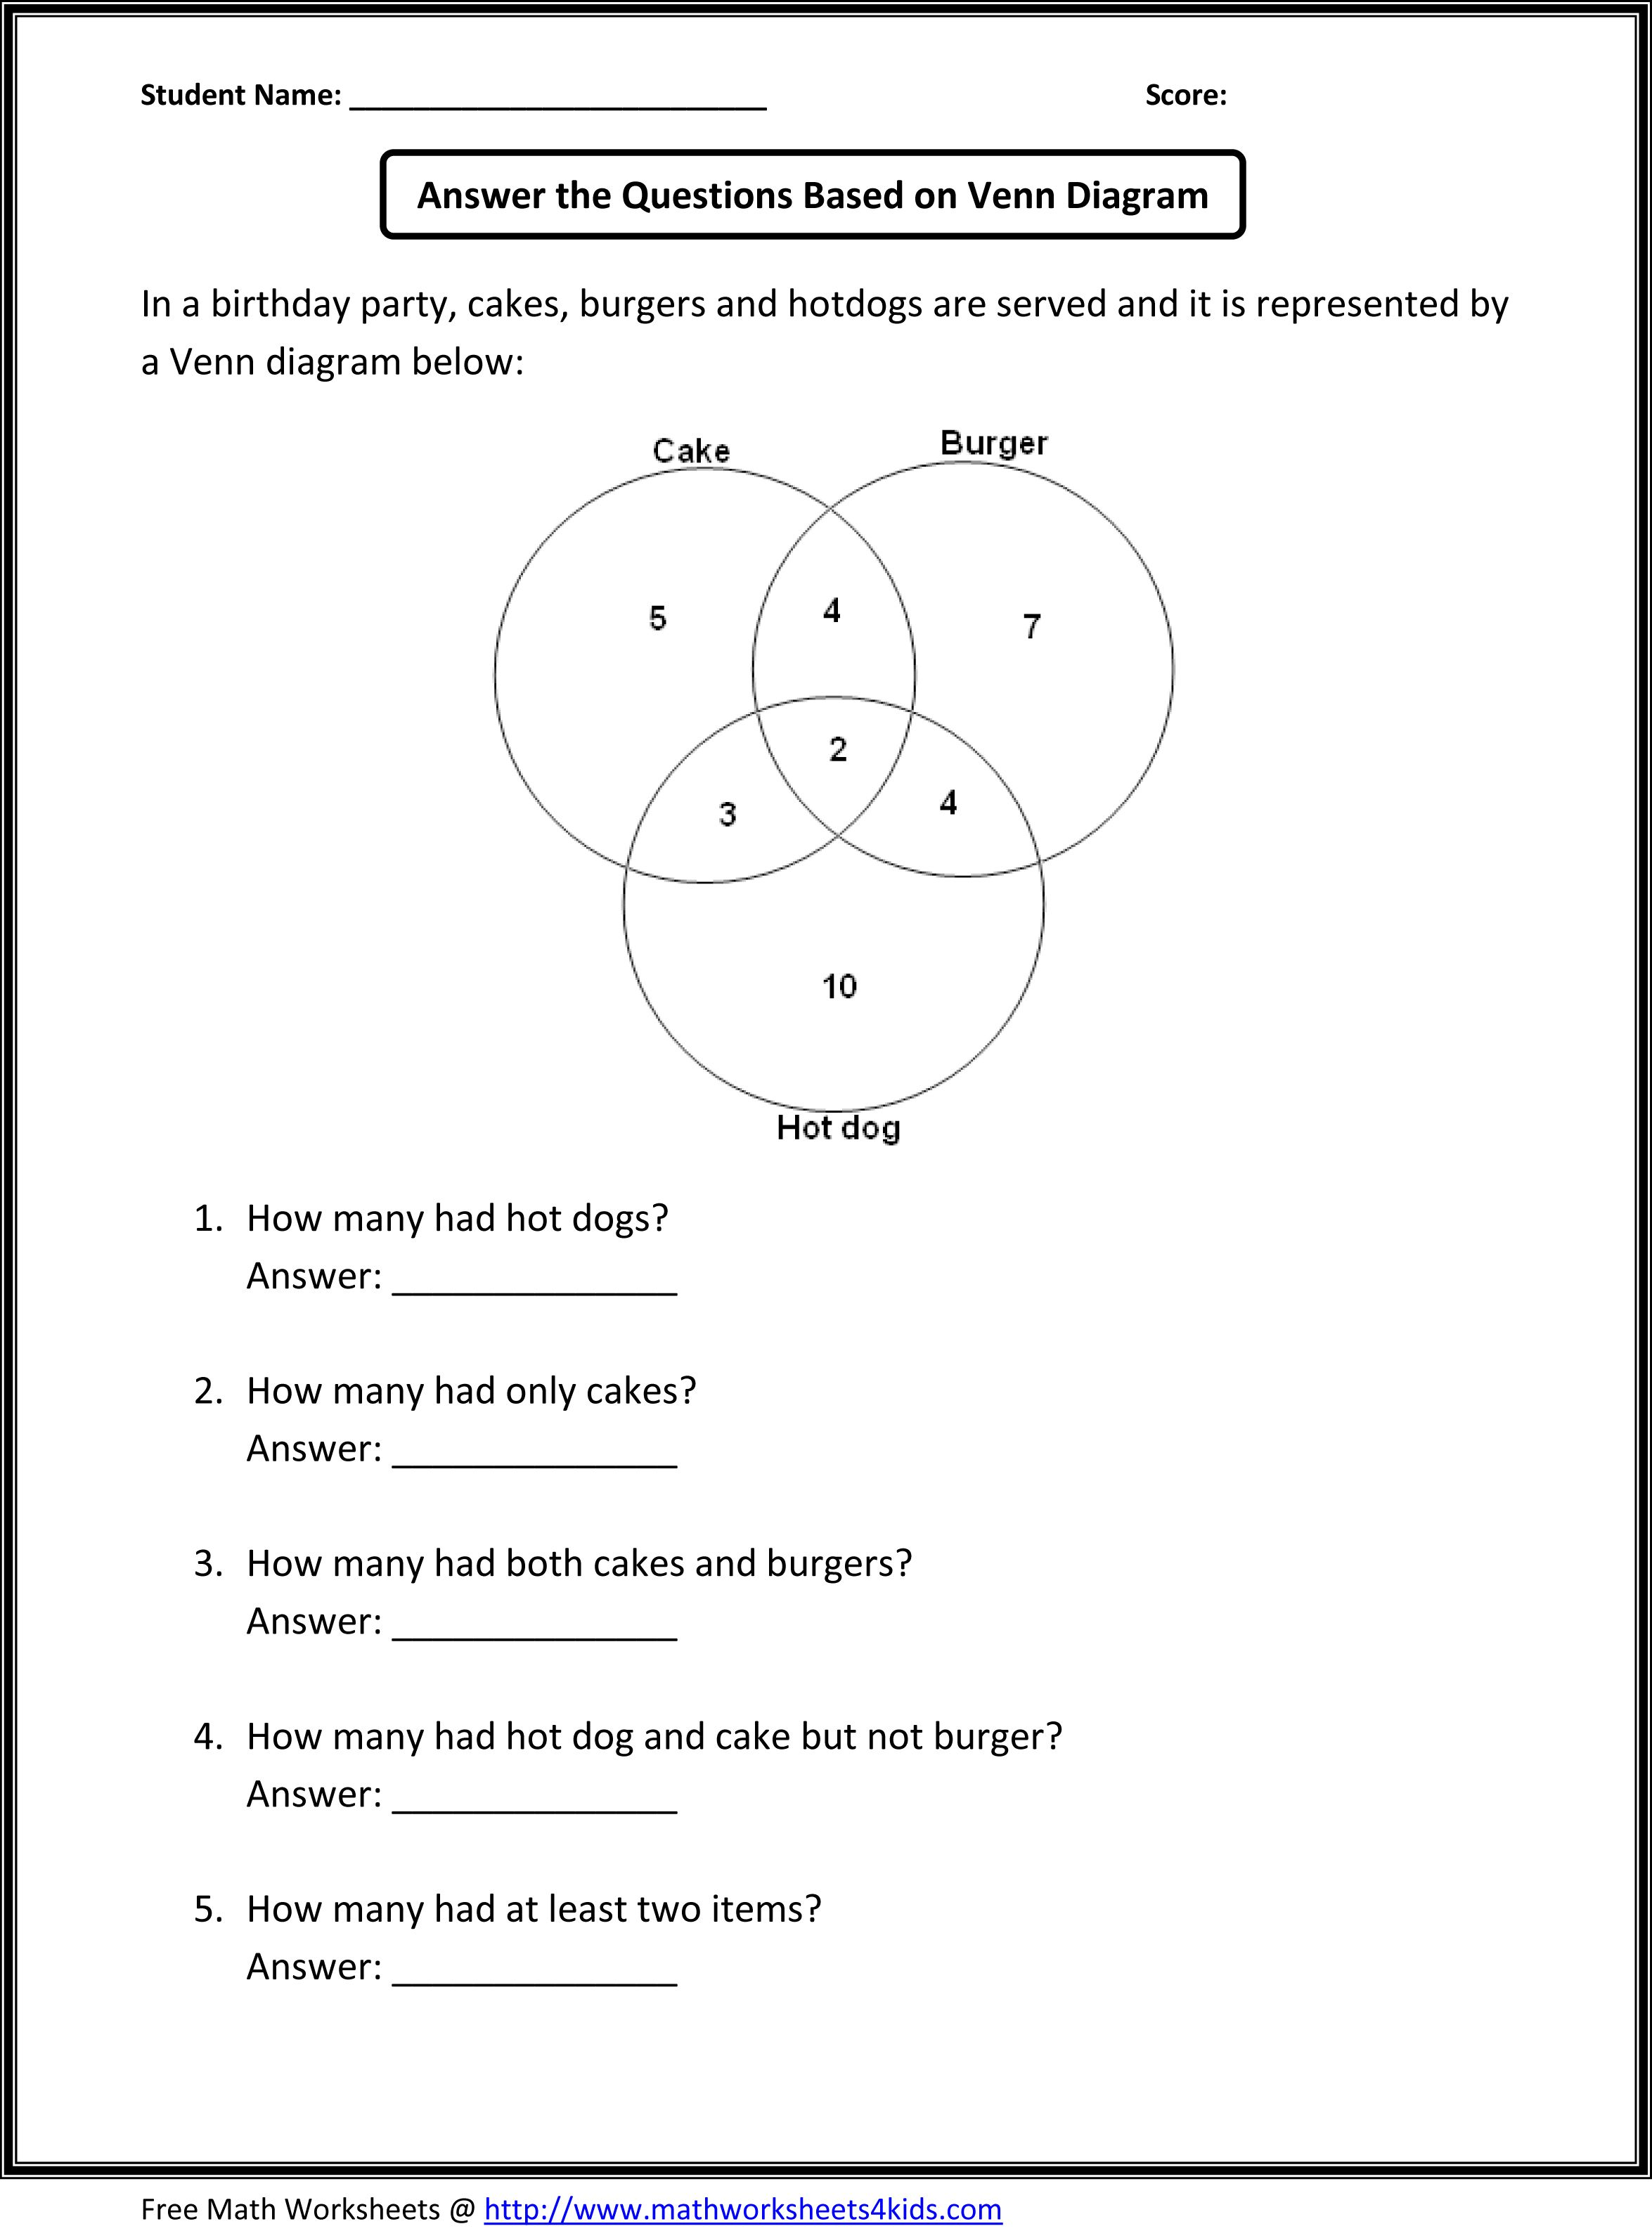 Worksheet Math Worksheets 5th Grade Word Problems venn diagram word problems school pinterest math 49cb5df227bebe37462741b3a6a98a45 jpg